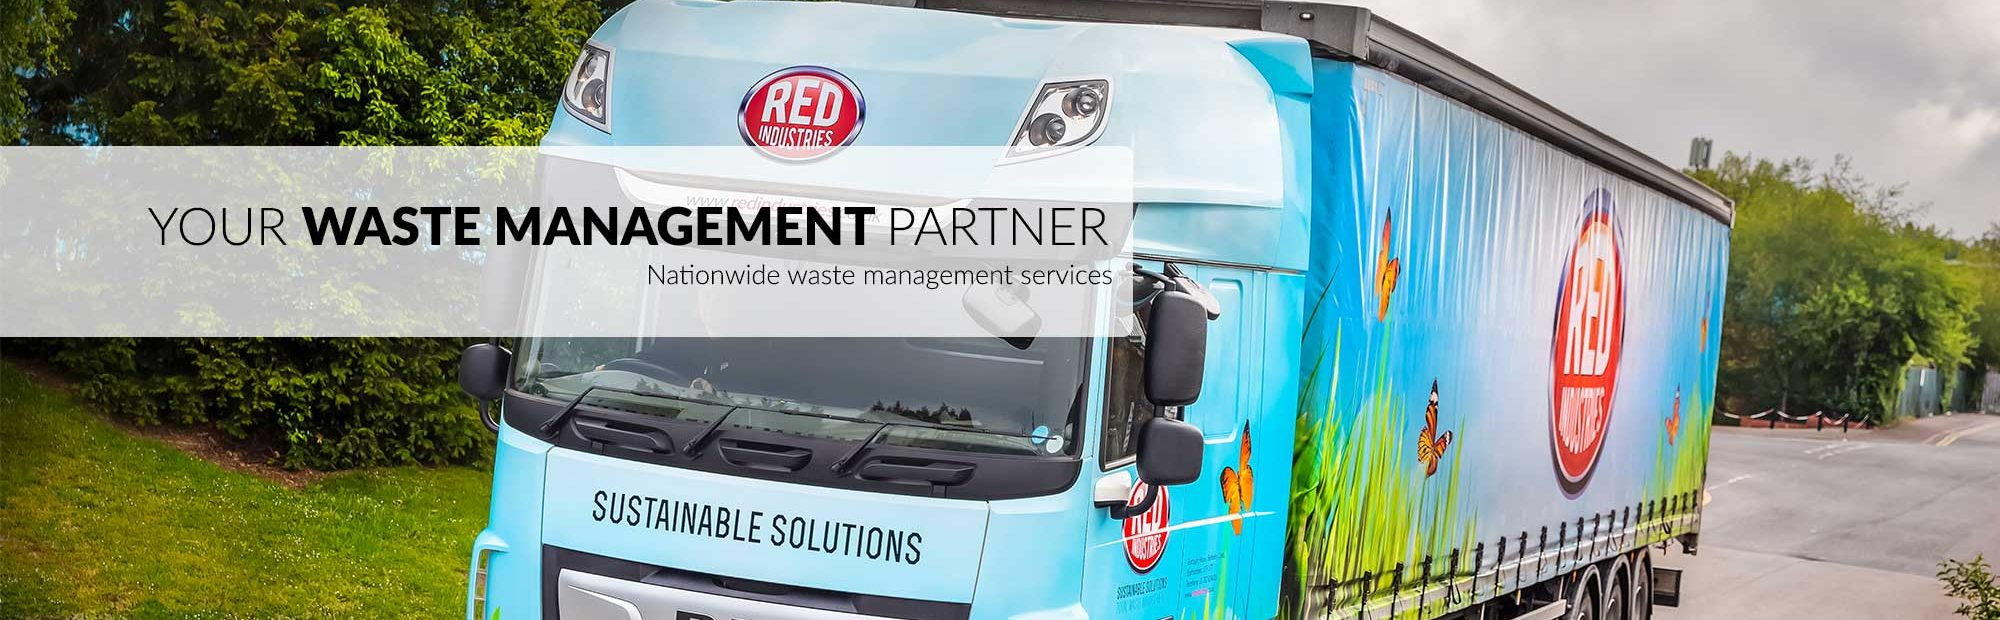 Industrial waste services, management and disposal